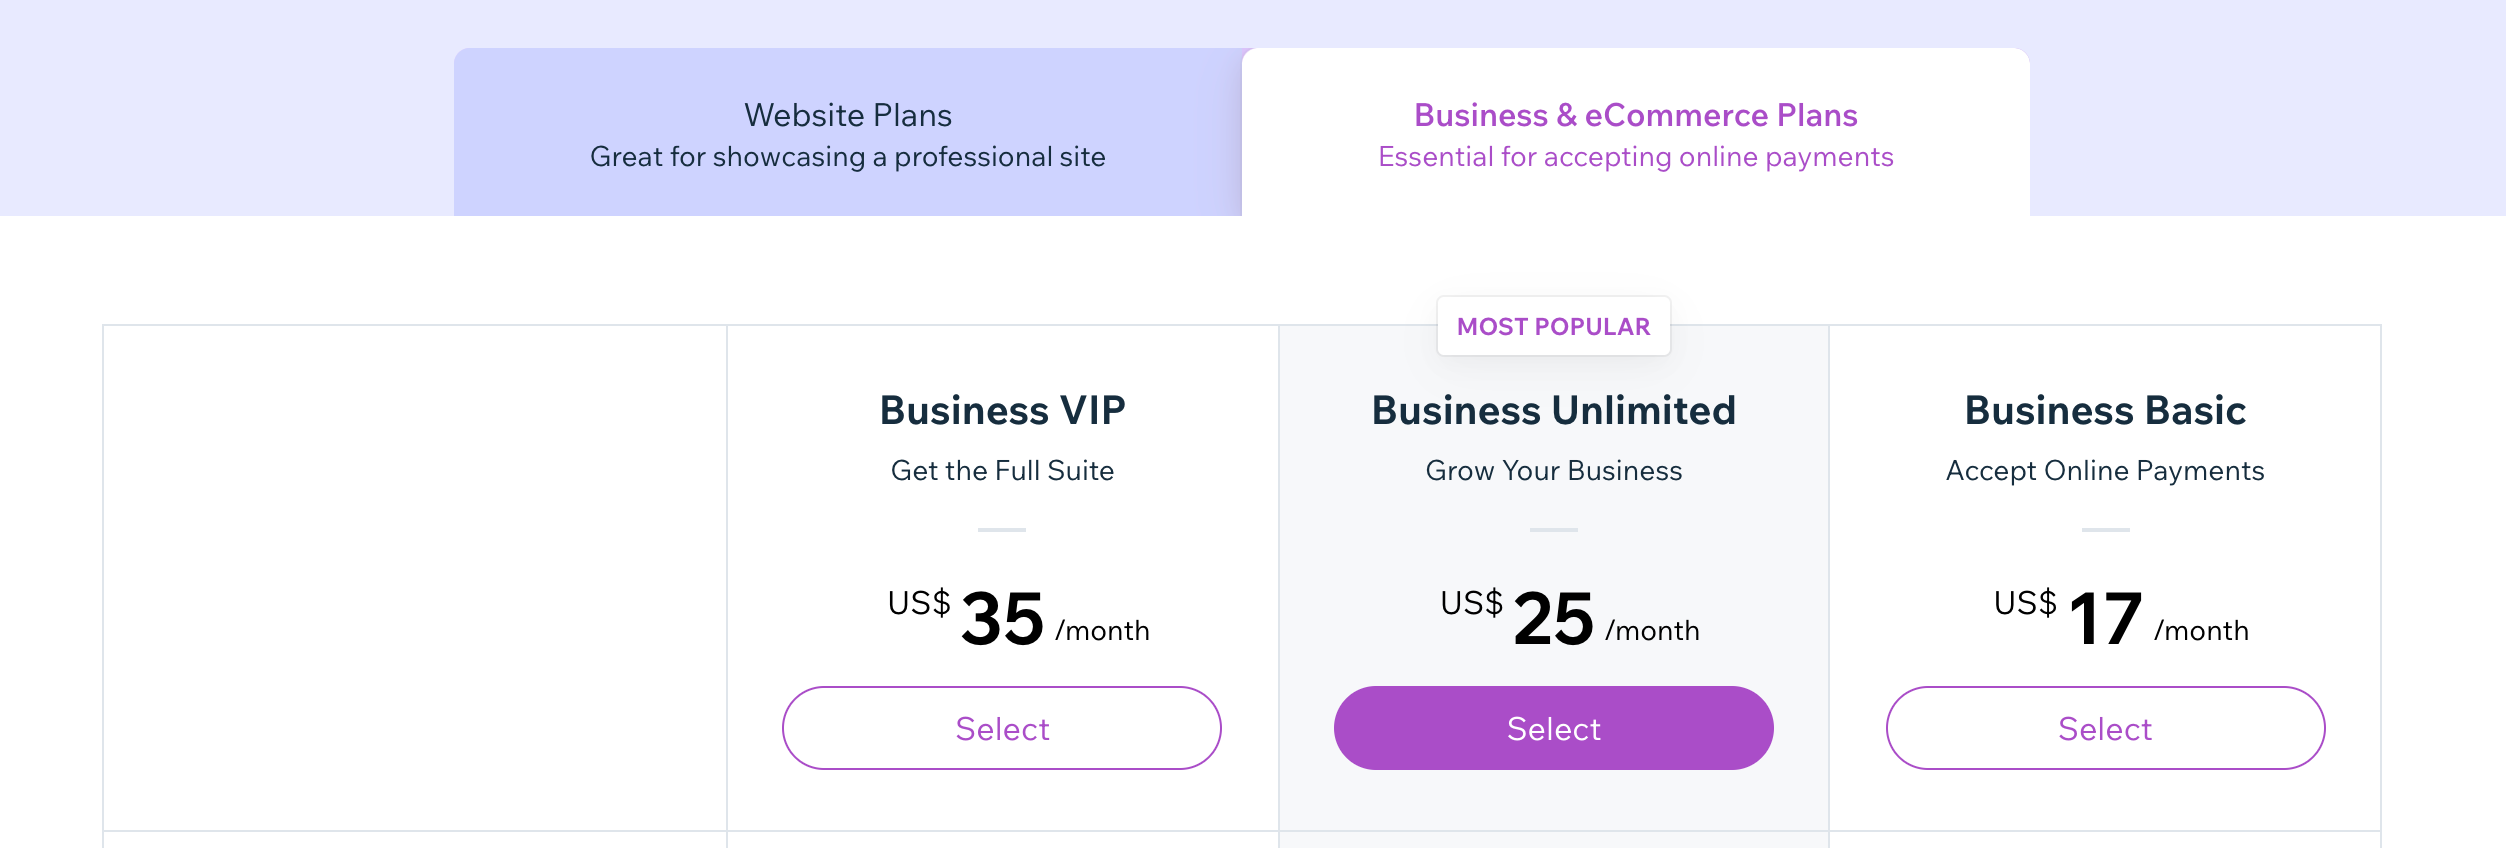 wix pricing for ecommerce business